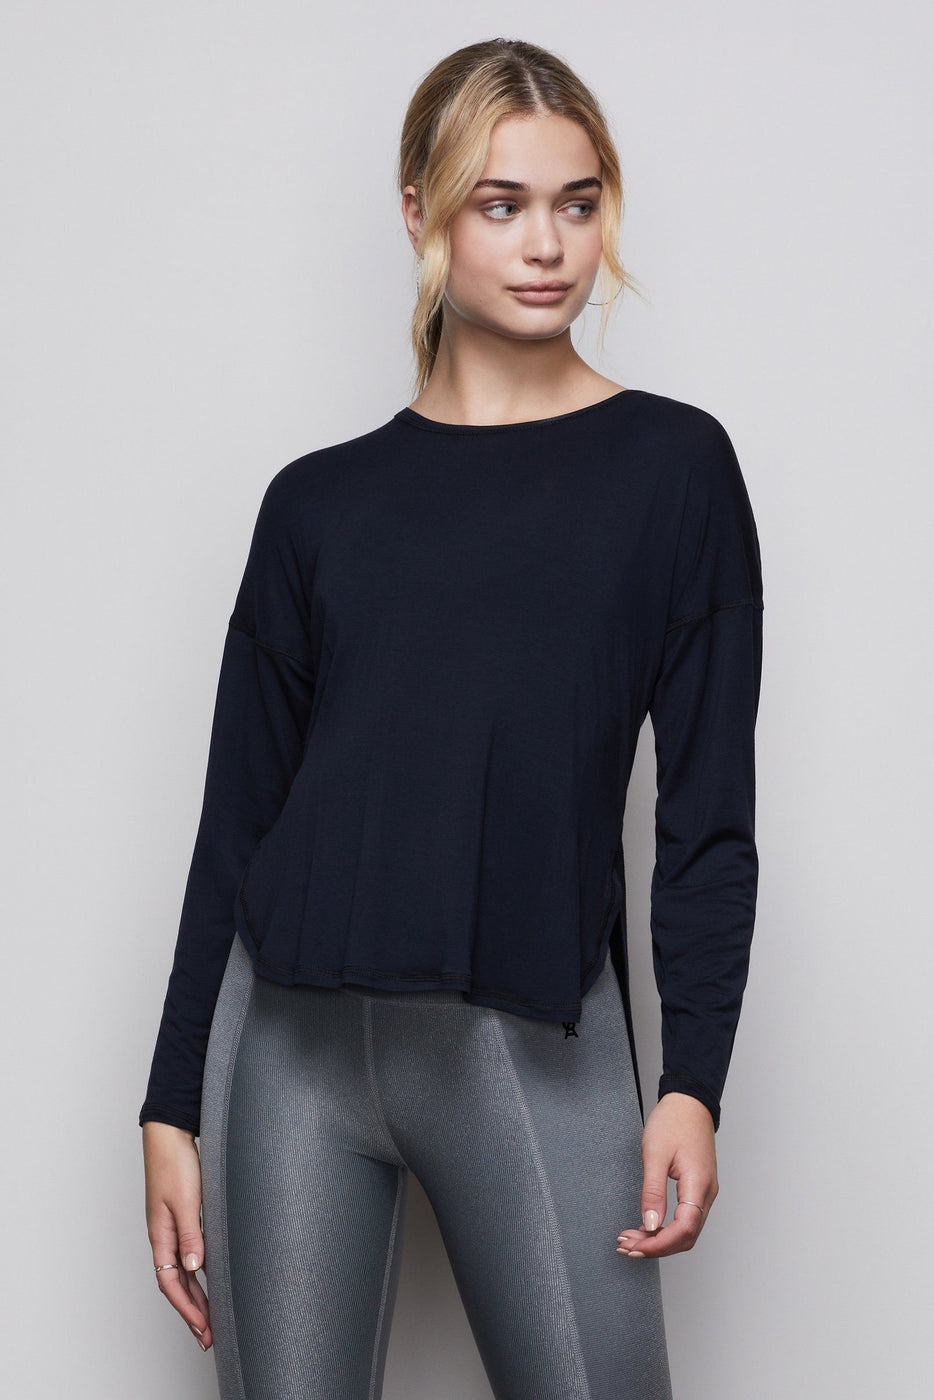 THE CRISS CROSS OPEN-BACK TOP | BLACK001